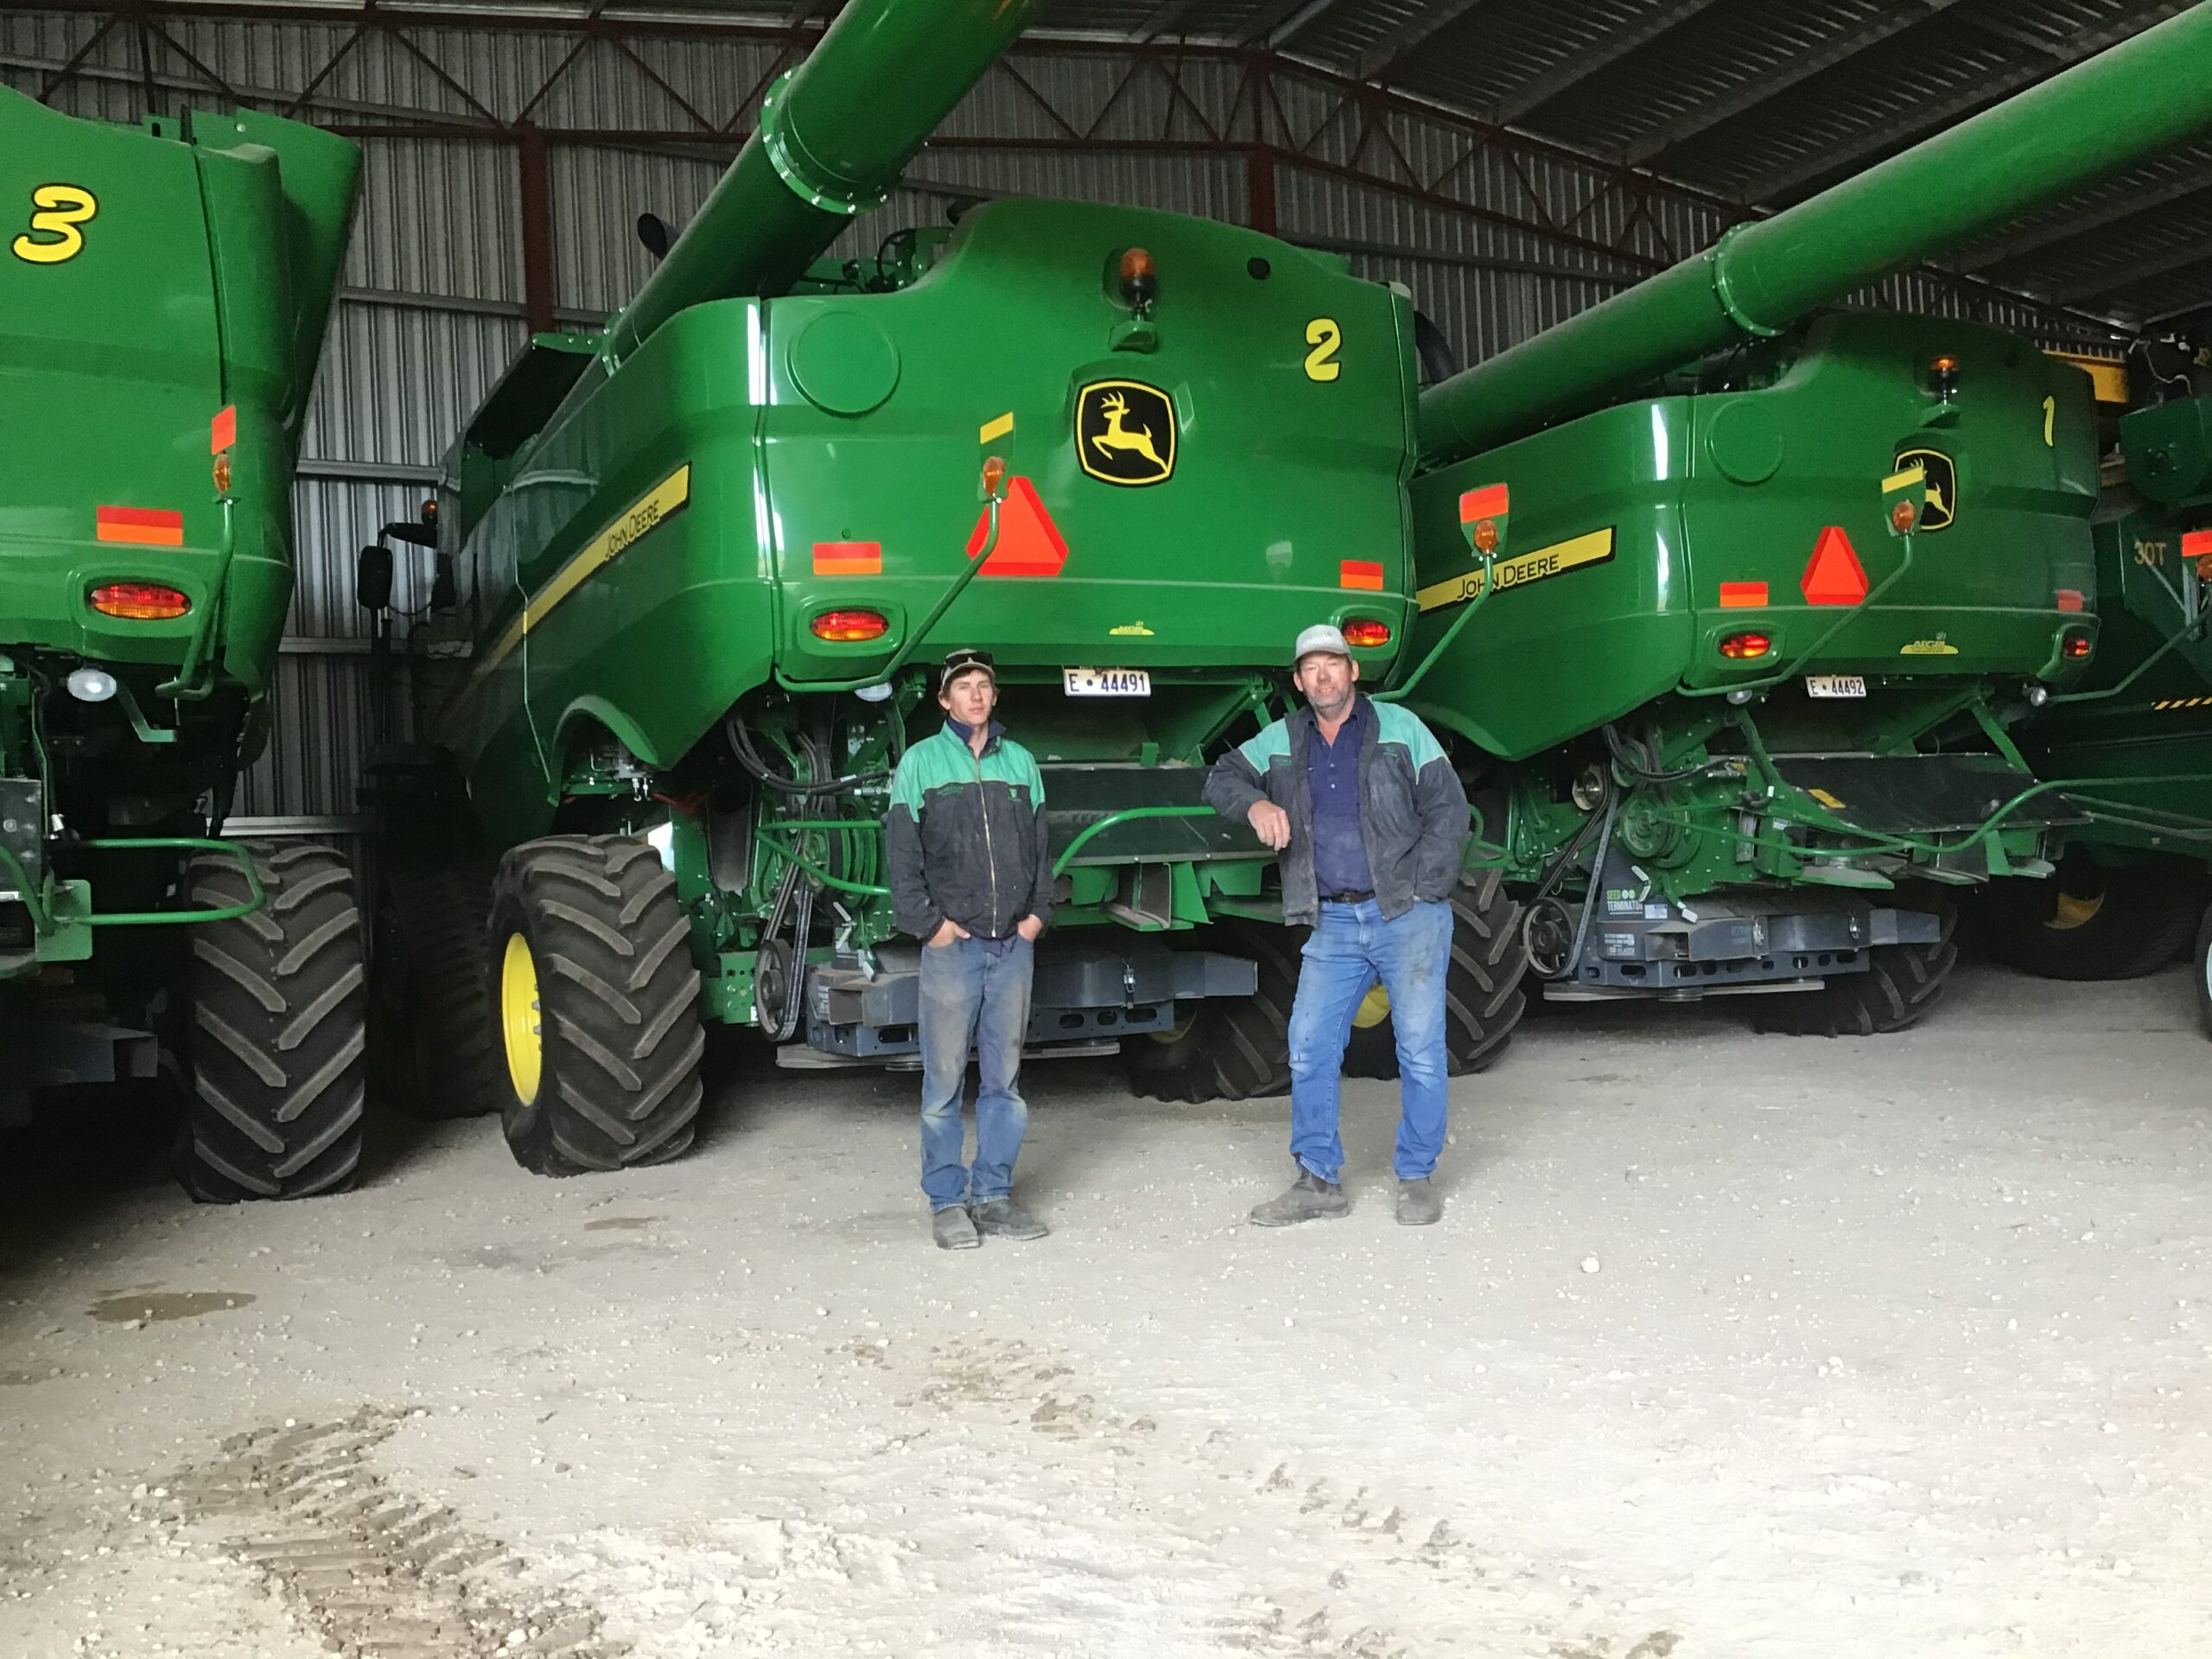 Weed seed impact mill update with Ben White and farmer case studies